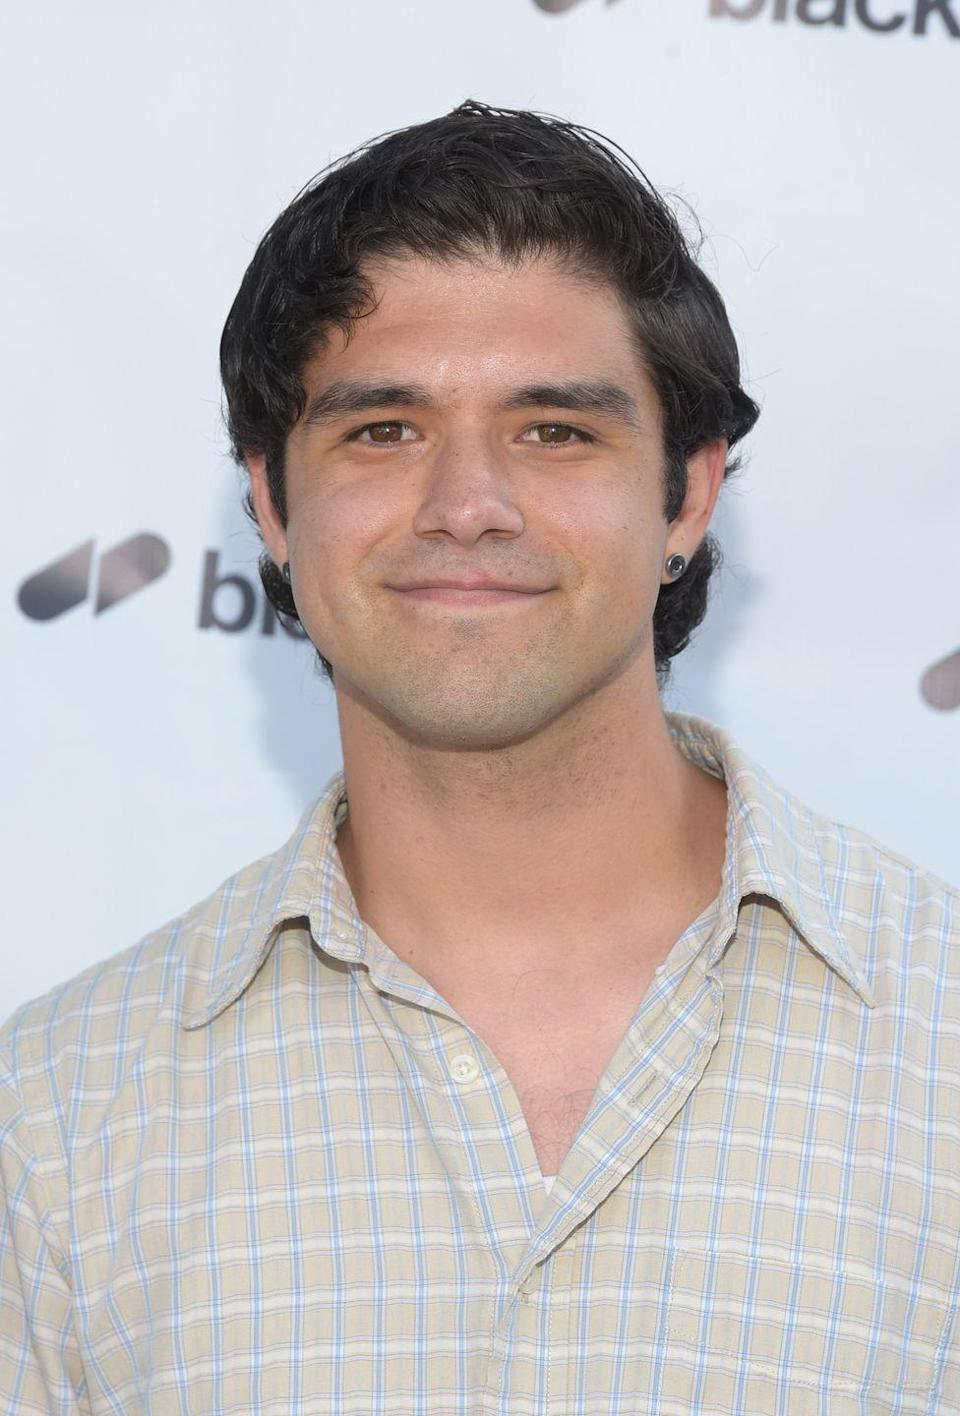 """<p>The actor Pérez posted in the photo on Instagram was Jesse Posey. Posey is the younger brother of Teen Wolf star Tyler Posey, and Selena: The Series will be one of his <a href=""""https://www.imdb.com/name/nm5107315/"""" rel=""""nofollow noopener"""" target=""""_blank"""" data-ylk=""""slk:first big acting roles"""" class=""""link rapid-noclick-resp"""">first big acting roles</a>.</p>"""